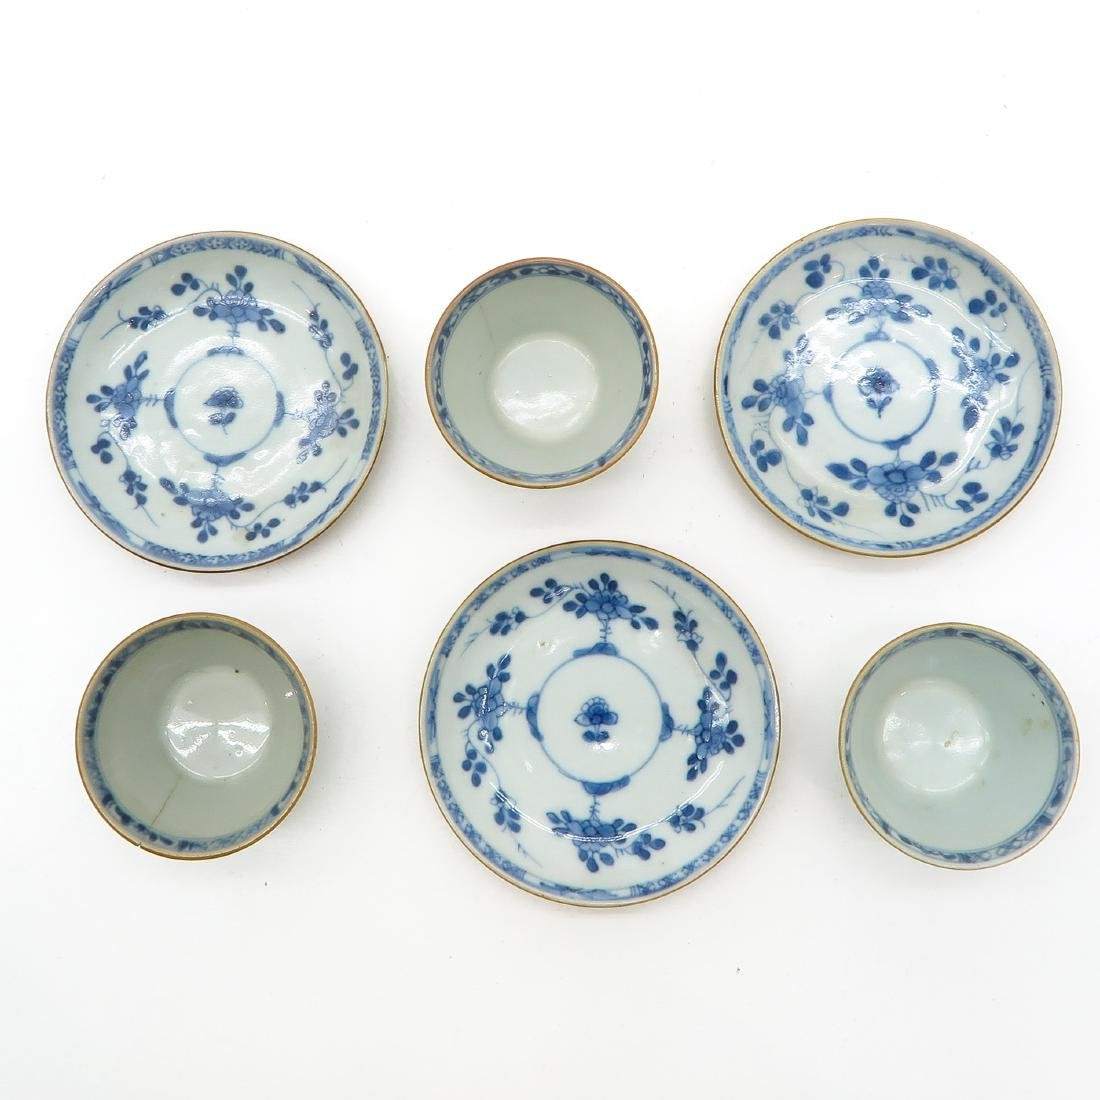 Lot of 3 Cups and Saucers - 4